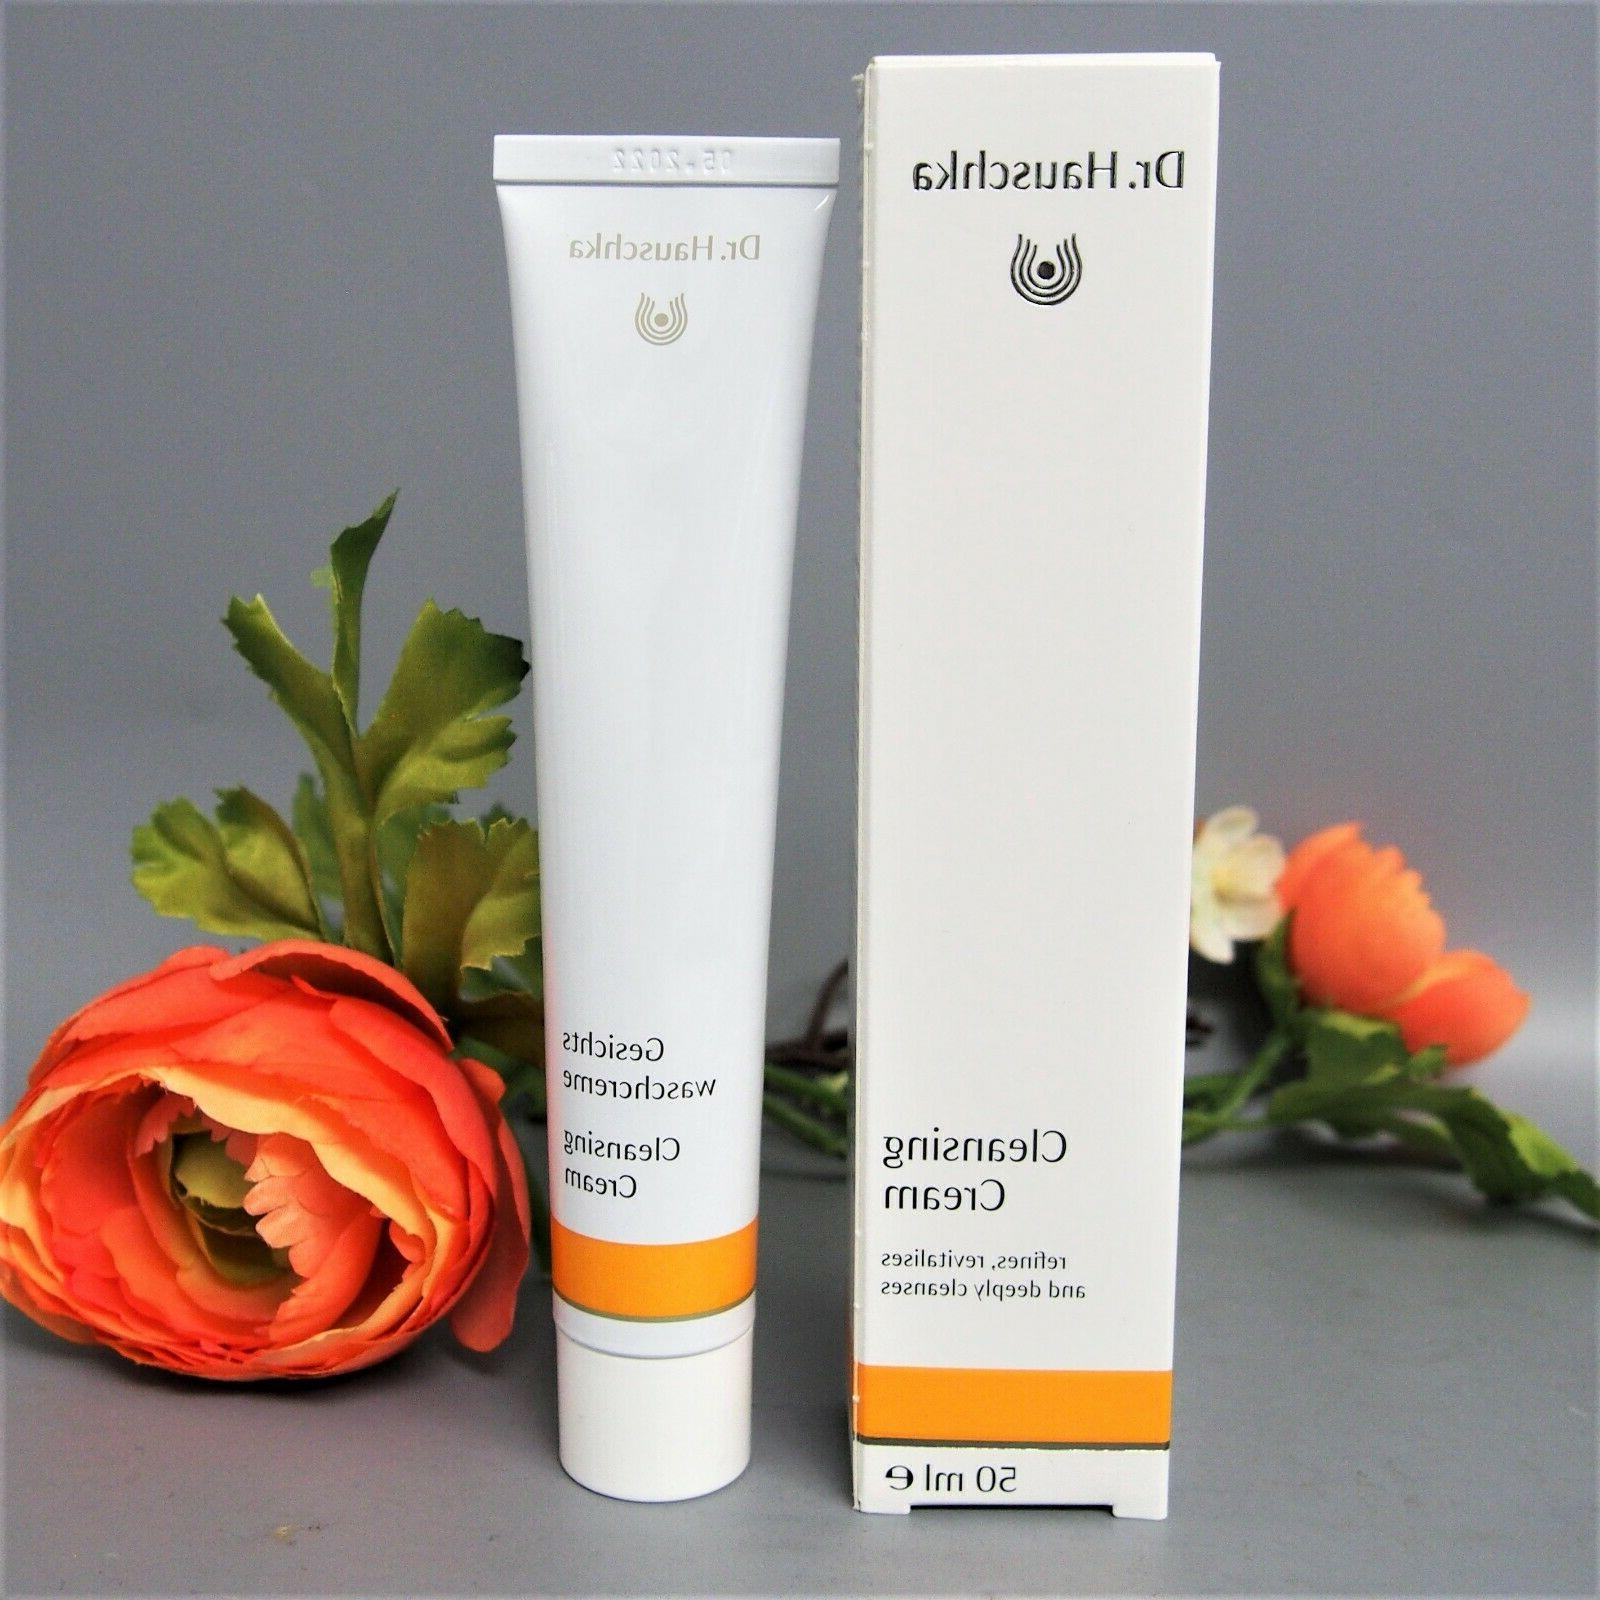 Dr. Hauschka CLEANSING CREAM 1.7 fl oz new GERMAN ORIGINAL